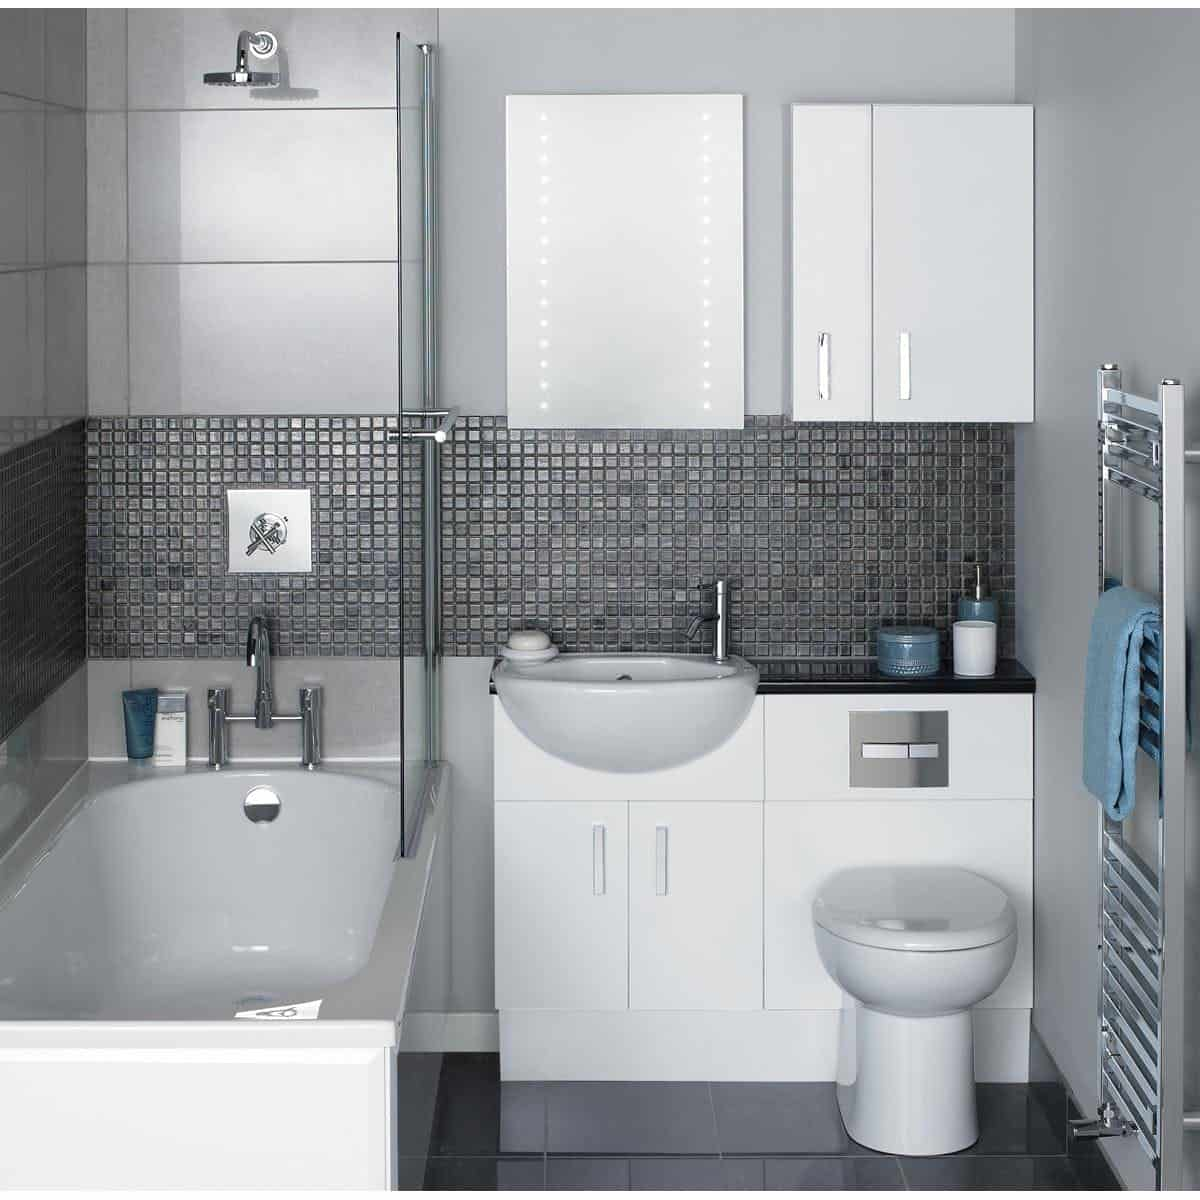 Bathroom Trends 2022: Top 14 New Ideas to Use in Your Interior